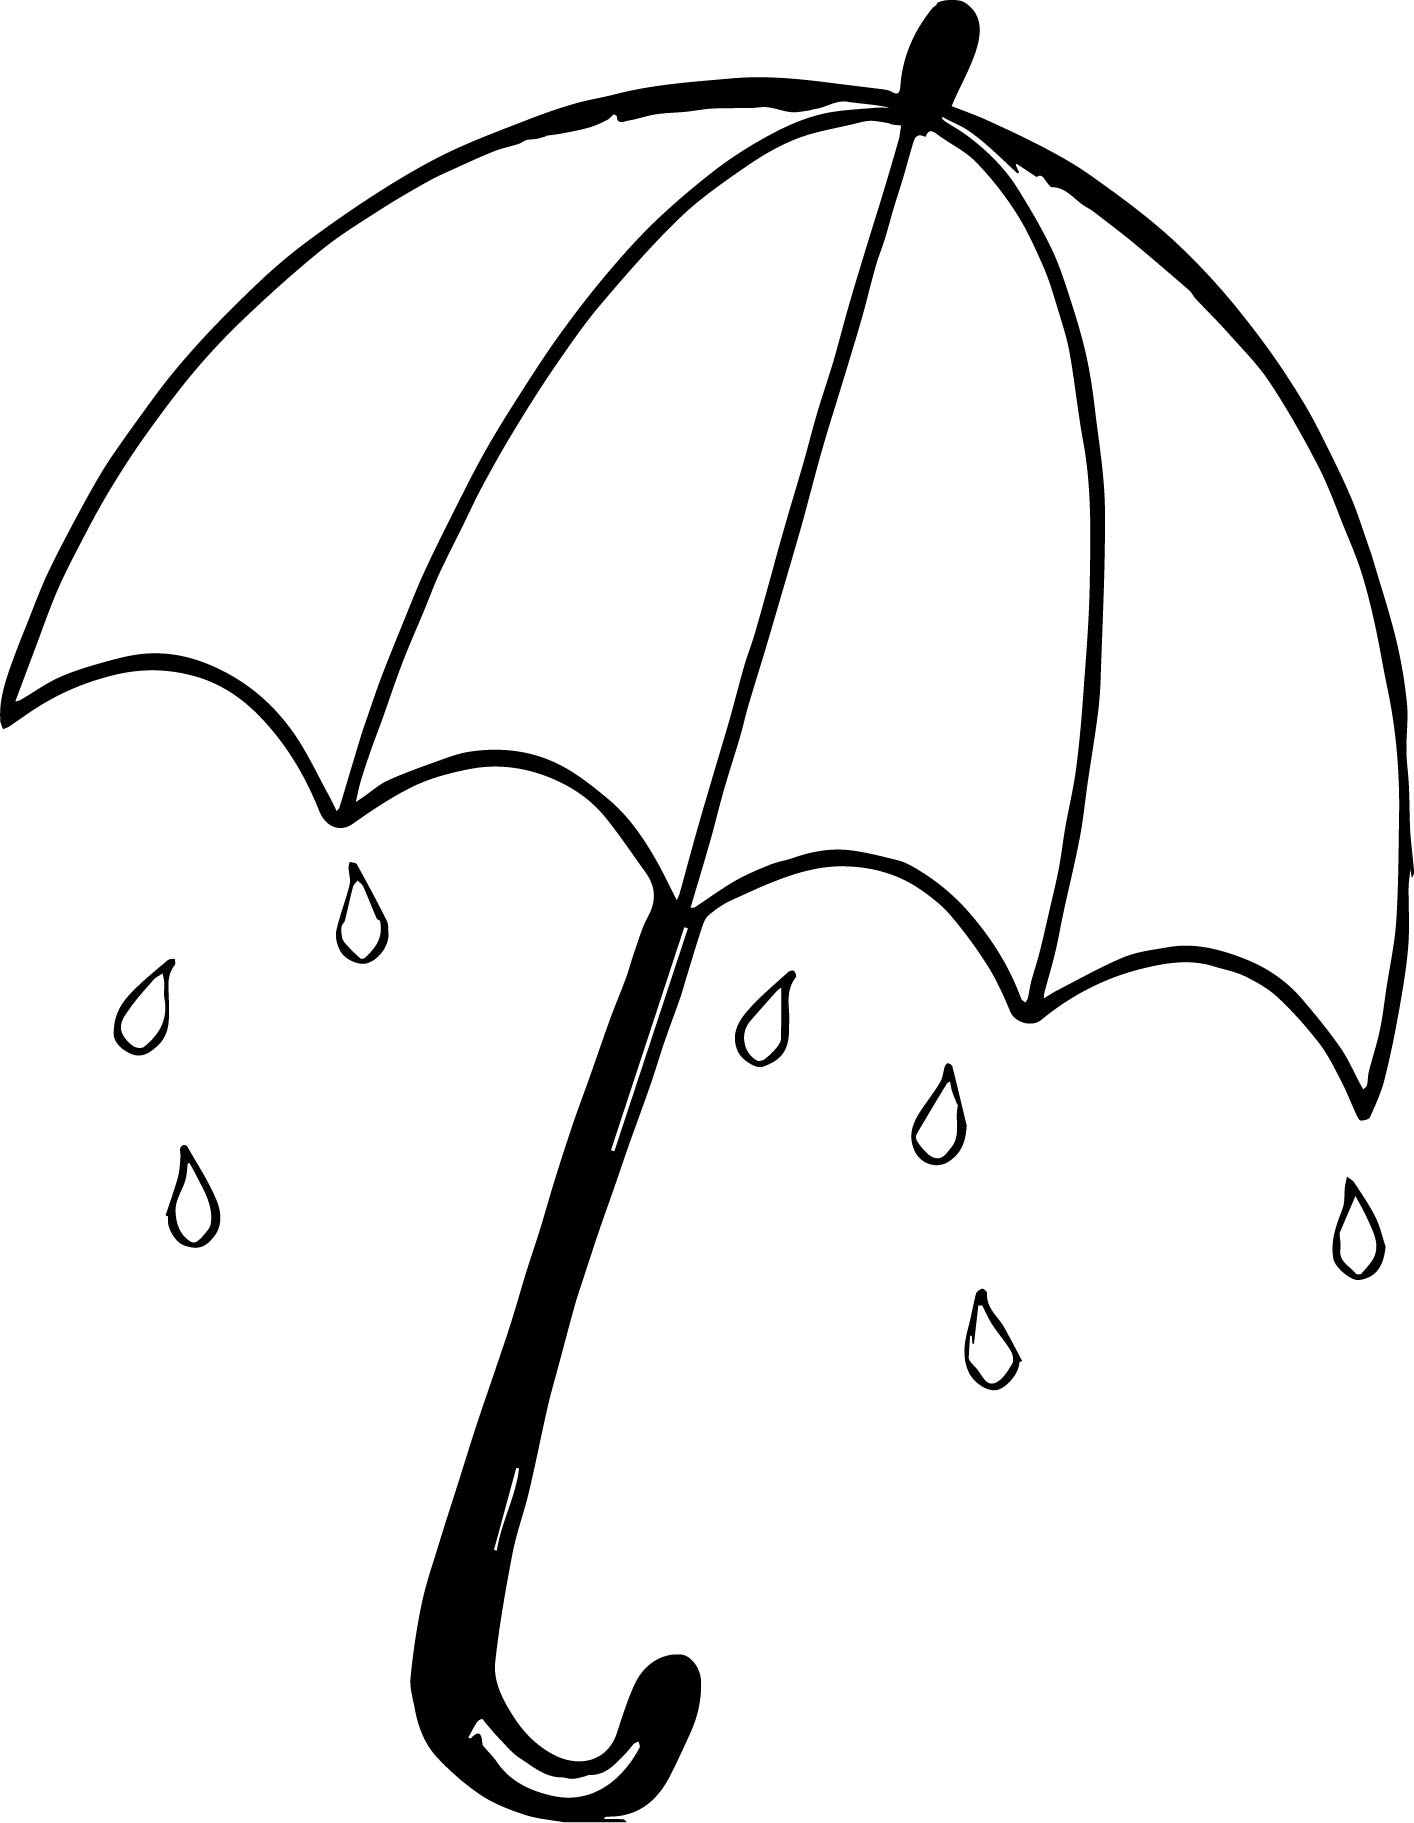 coloring pages umbrella - april shower umbrella coloring page